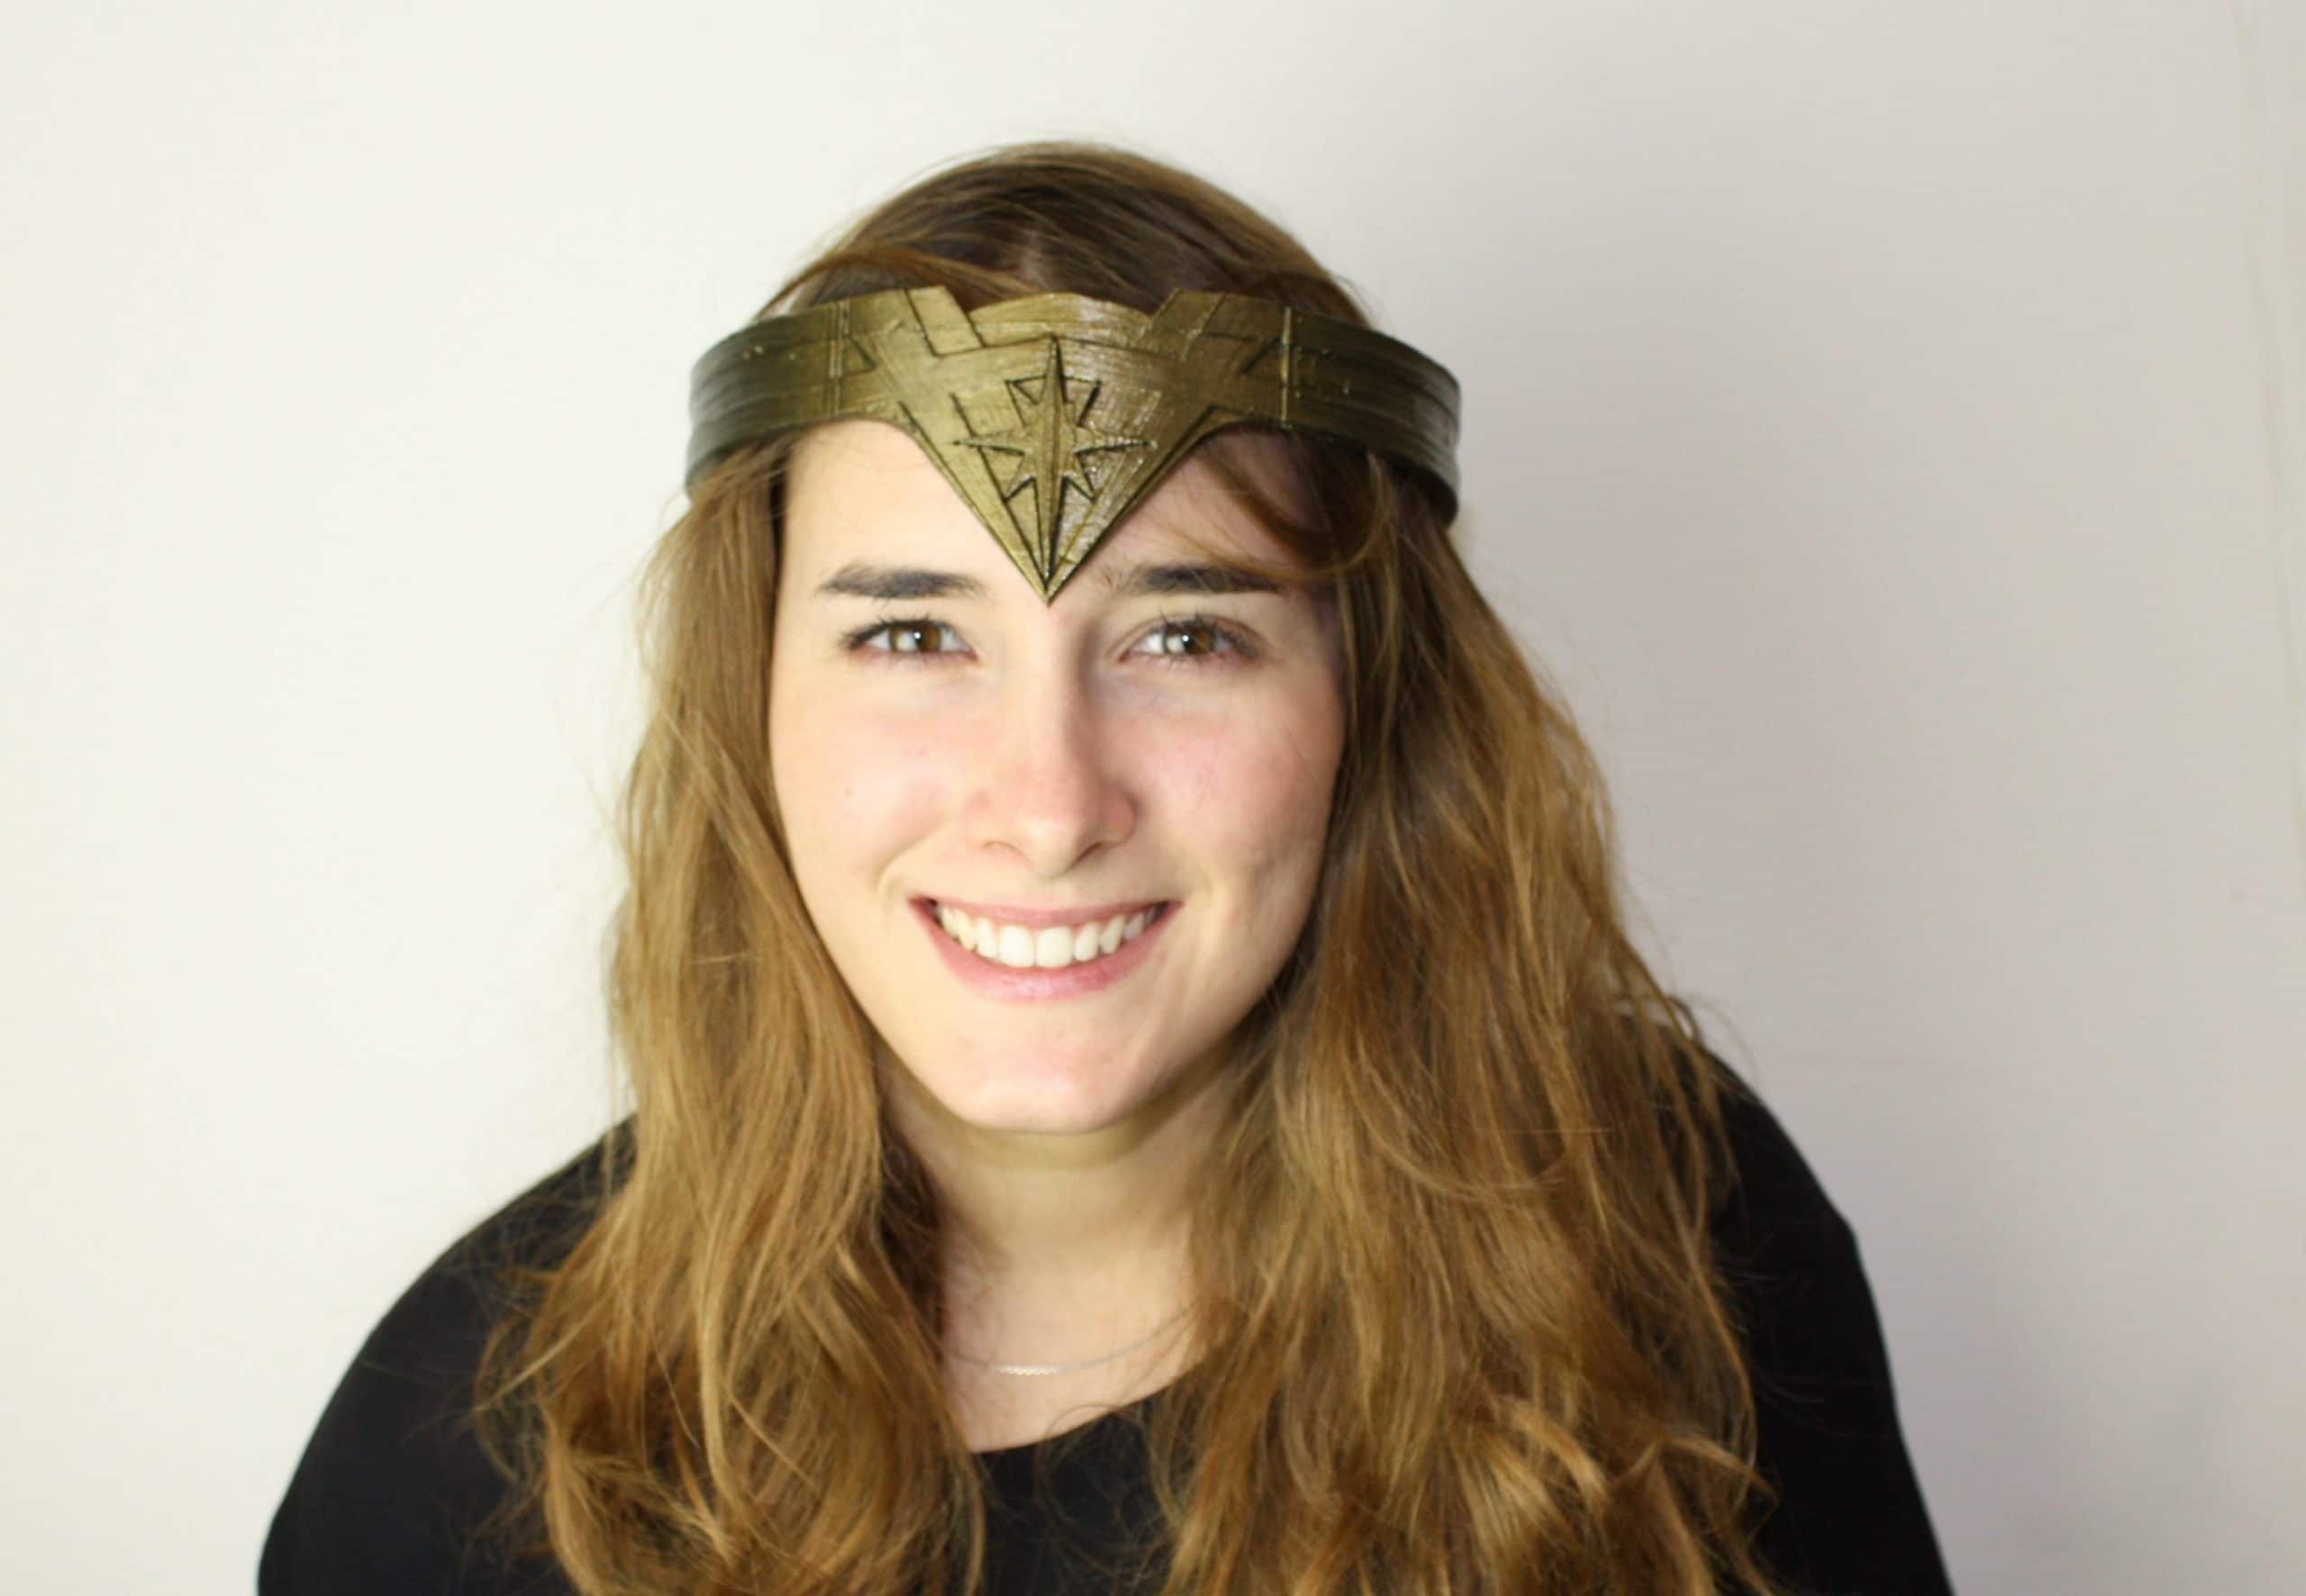 Simple, Fun, and Easy 3D Printed Halloween Costume Ideas - SD3D ...